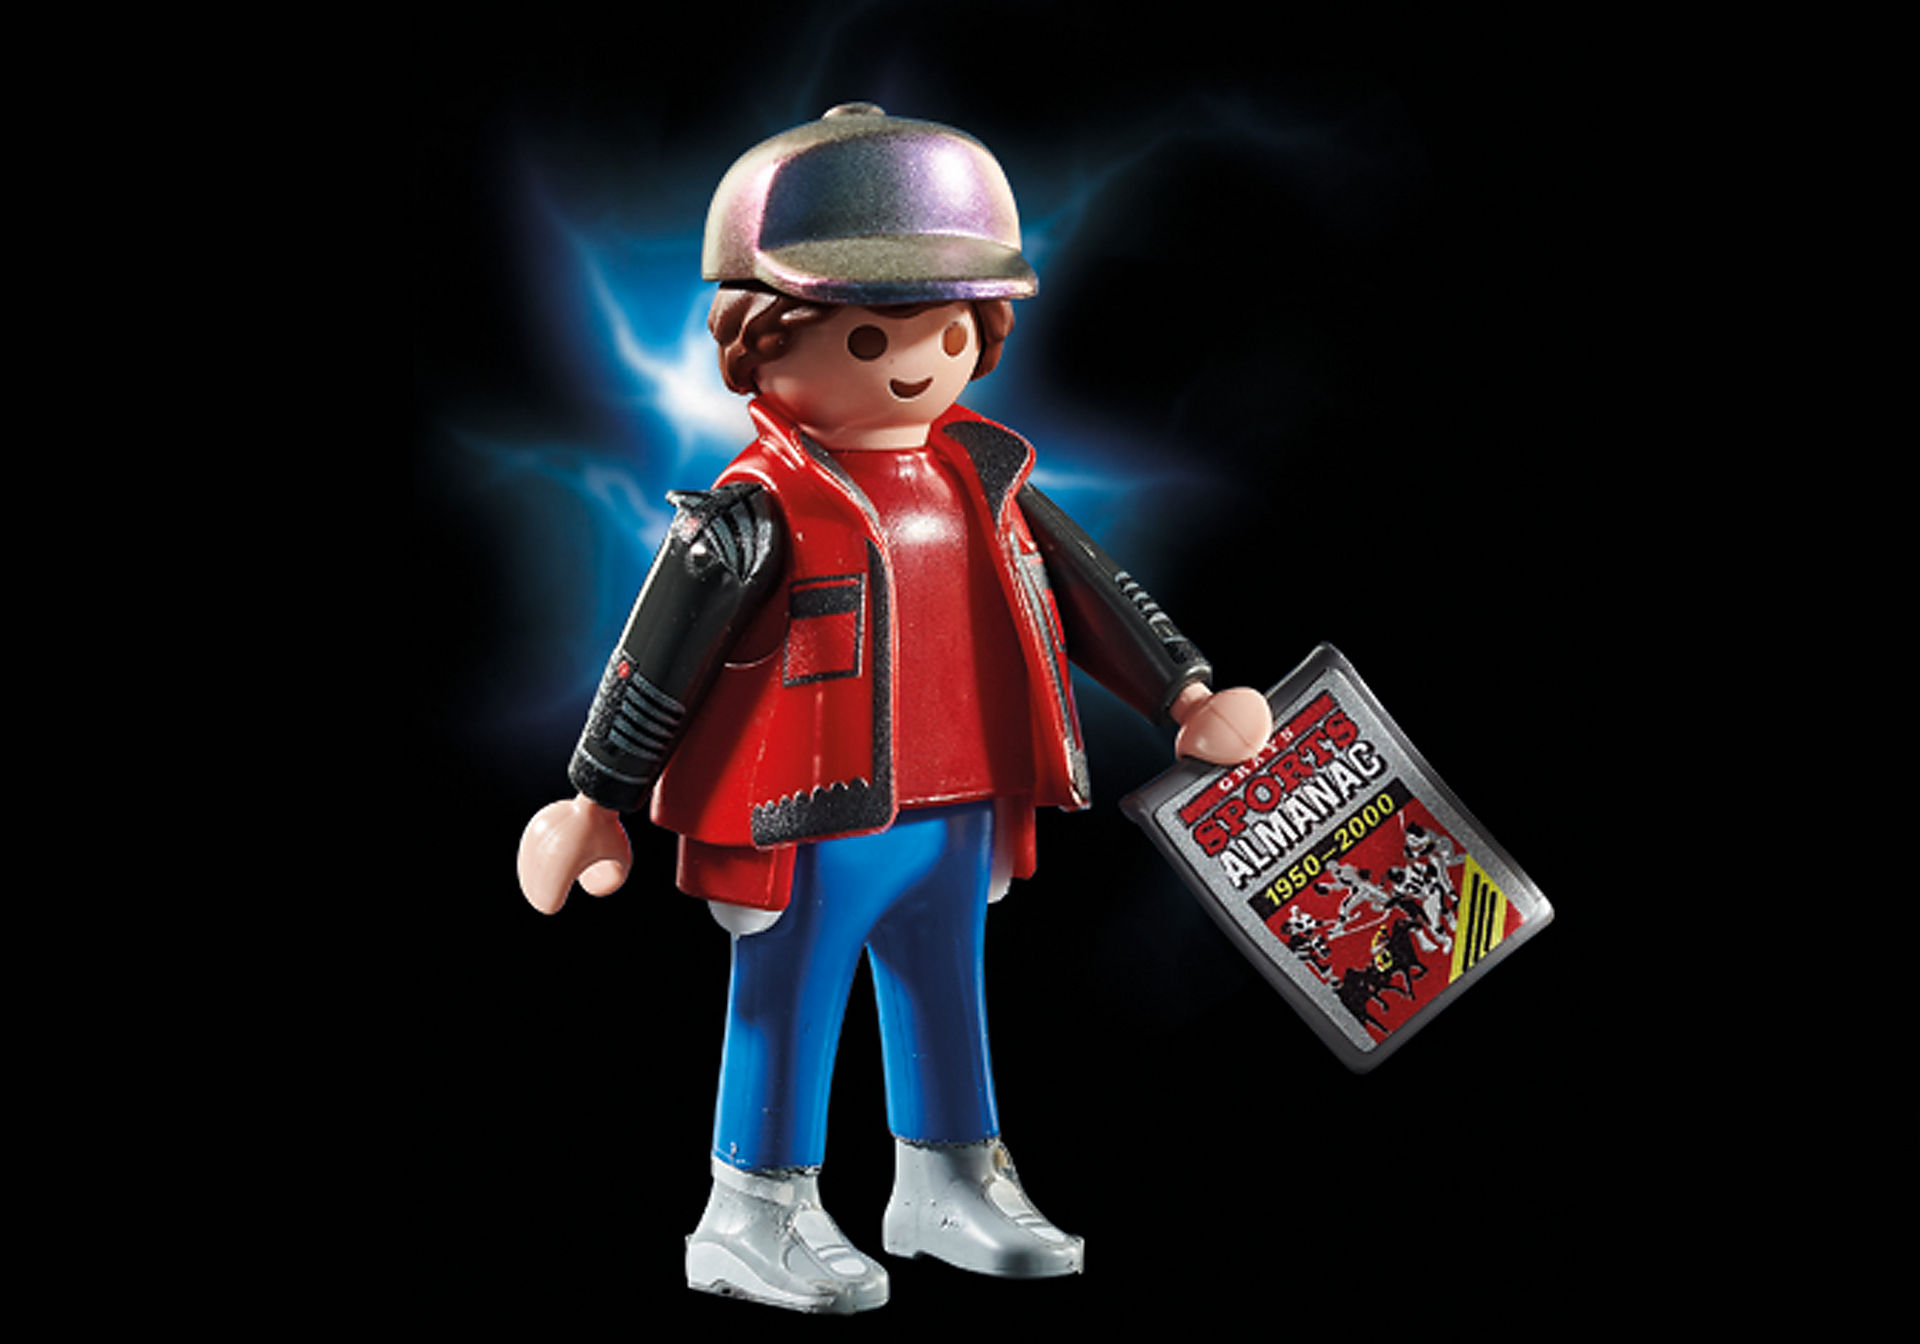 70634 Back to the Future Part II Verfolgung mit Hoverboard zoom image6